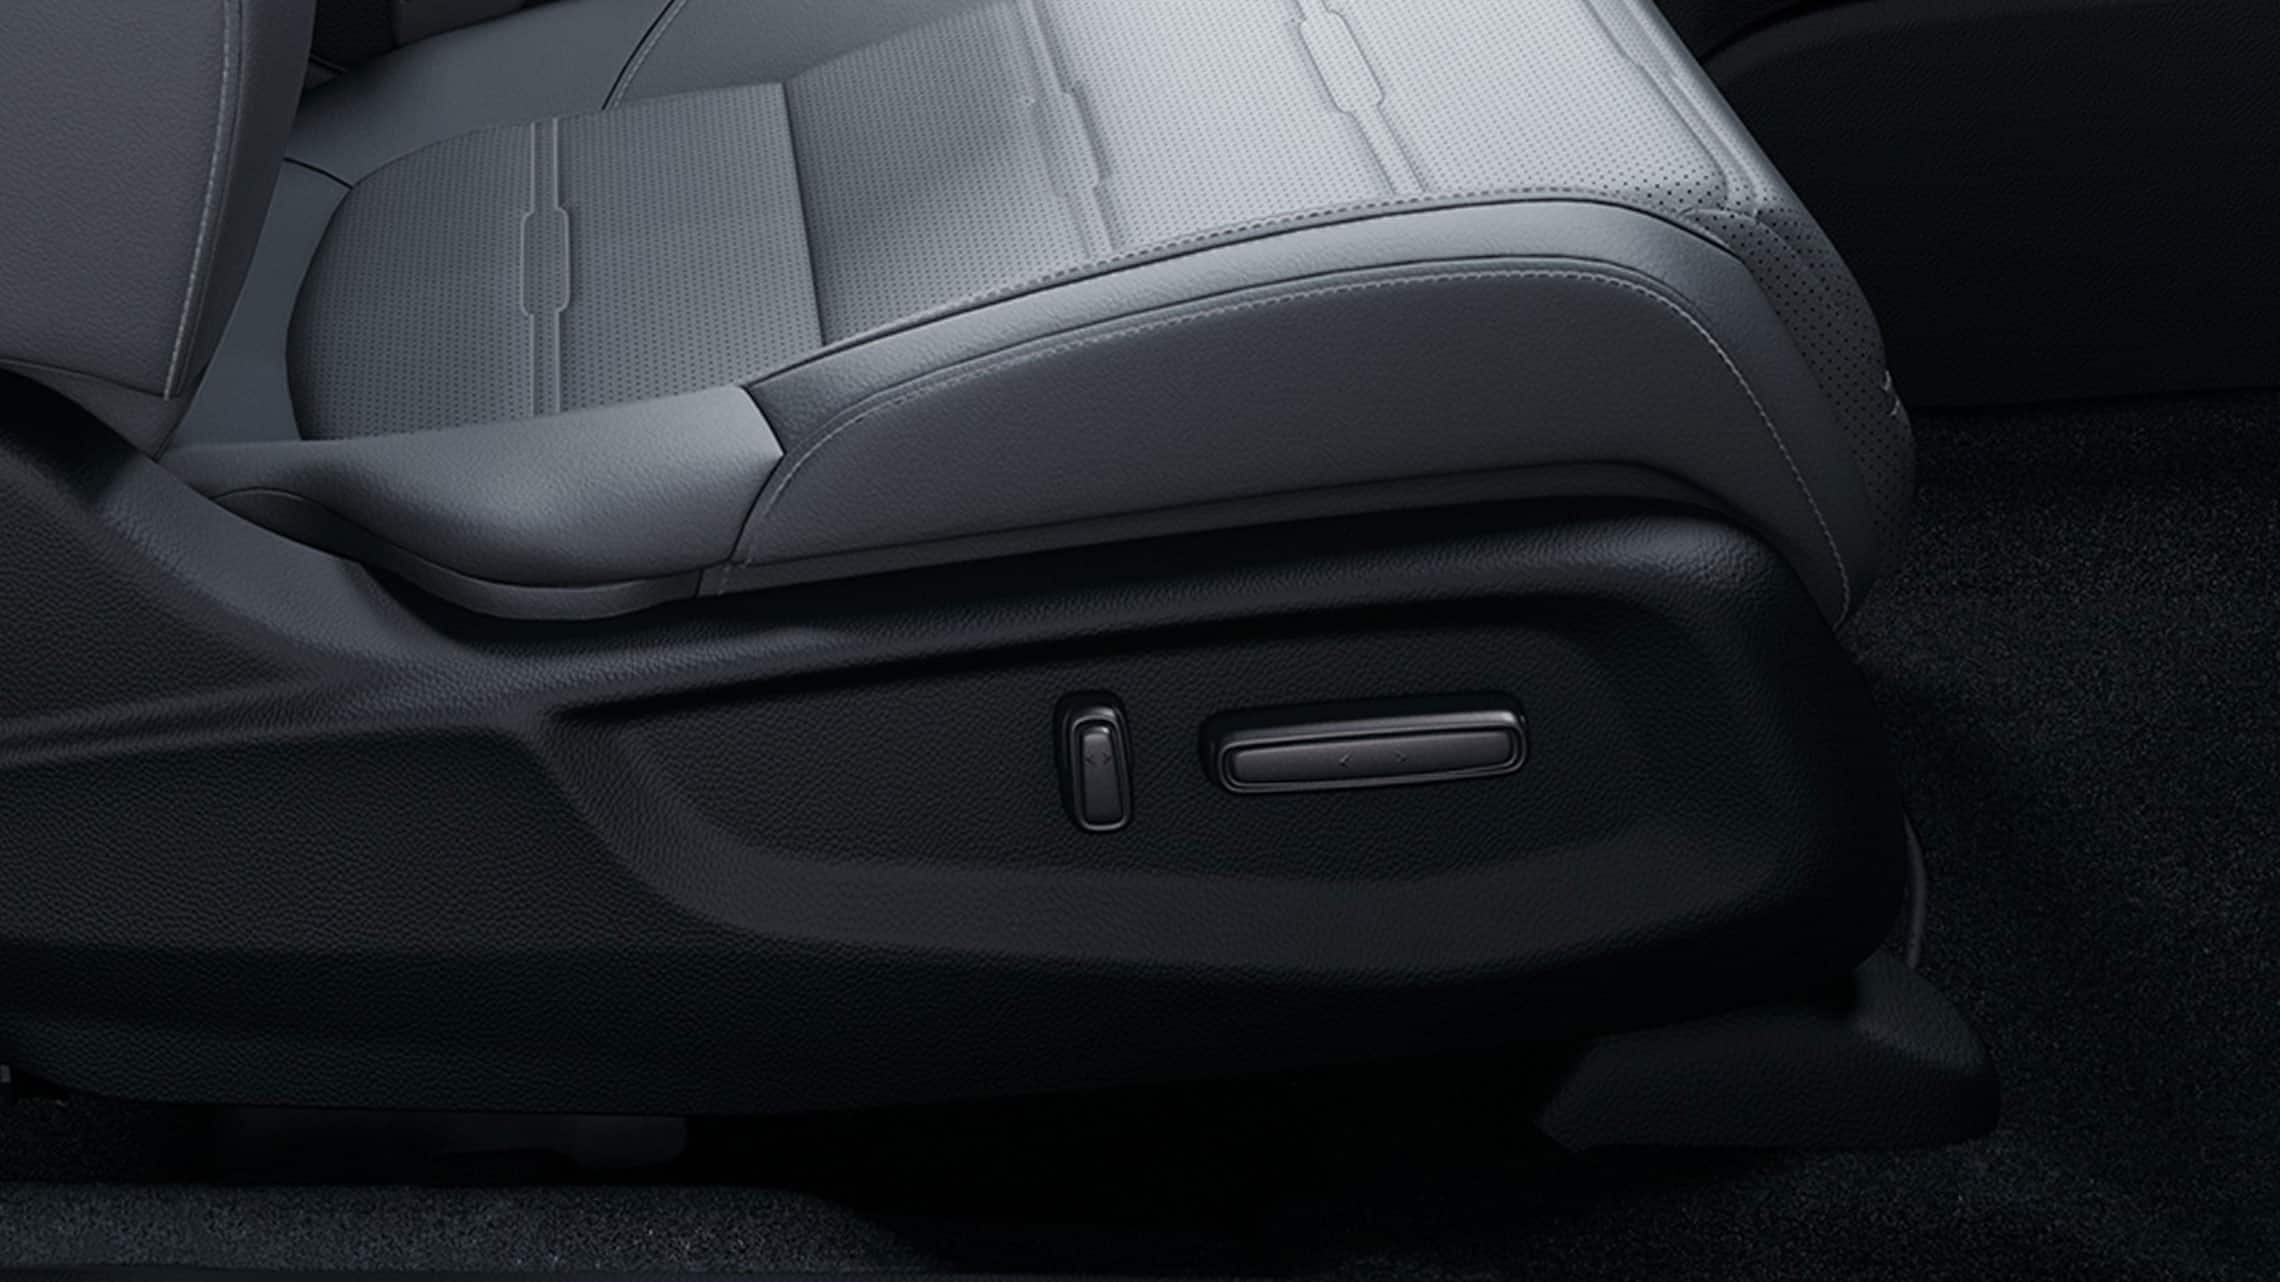 Power-adjustable front passenger seat detail in the 2020 Honda CR-V.